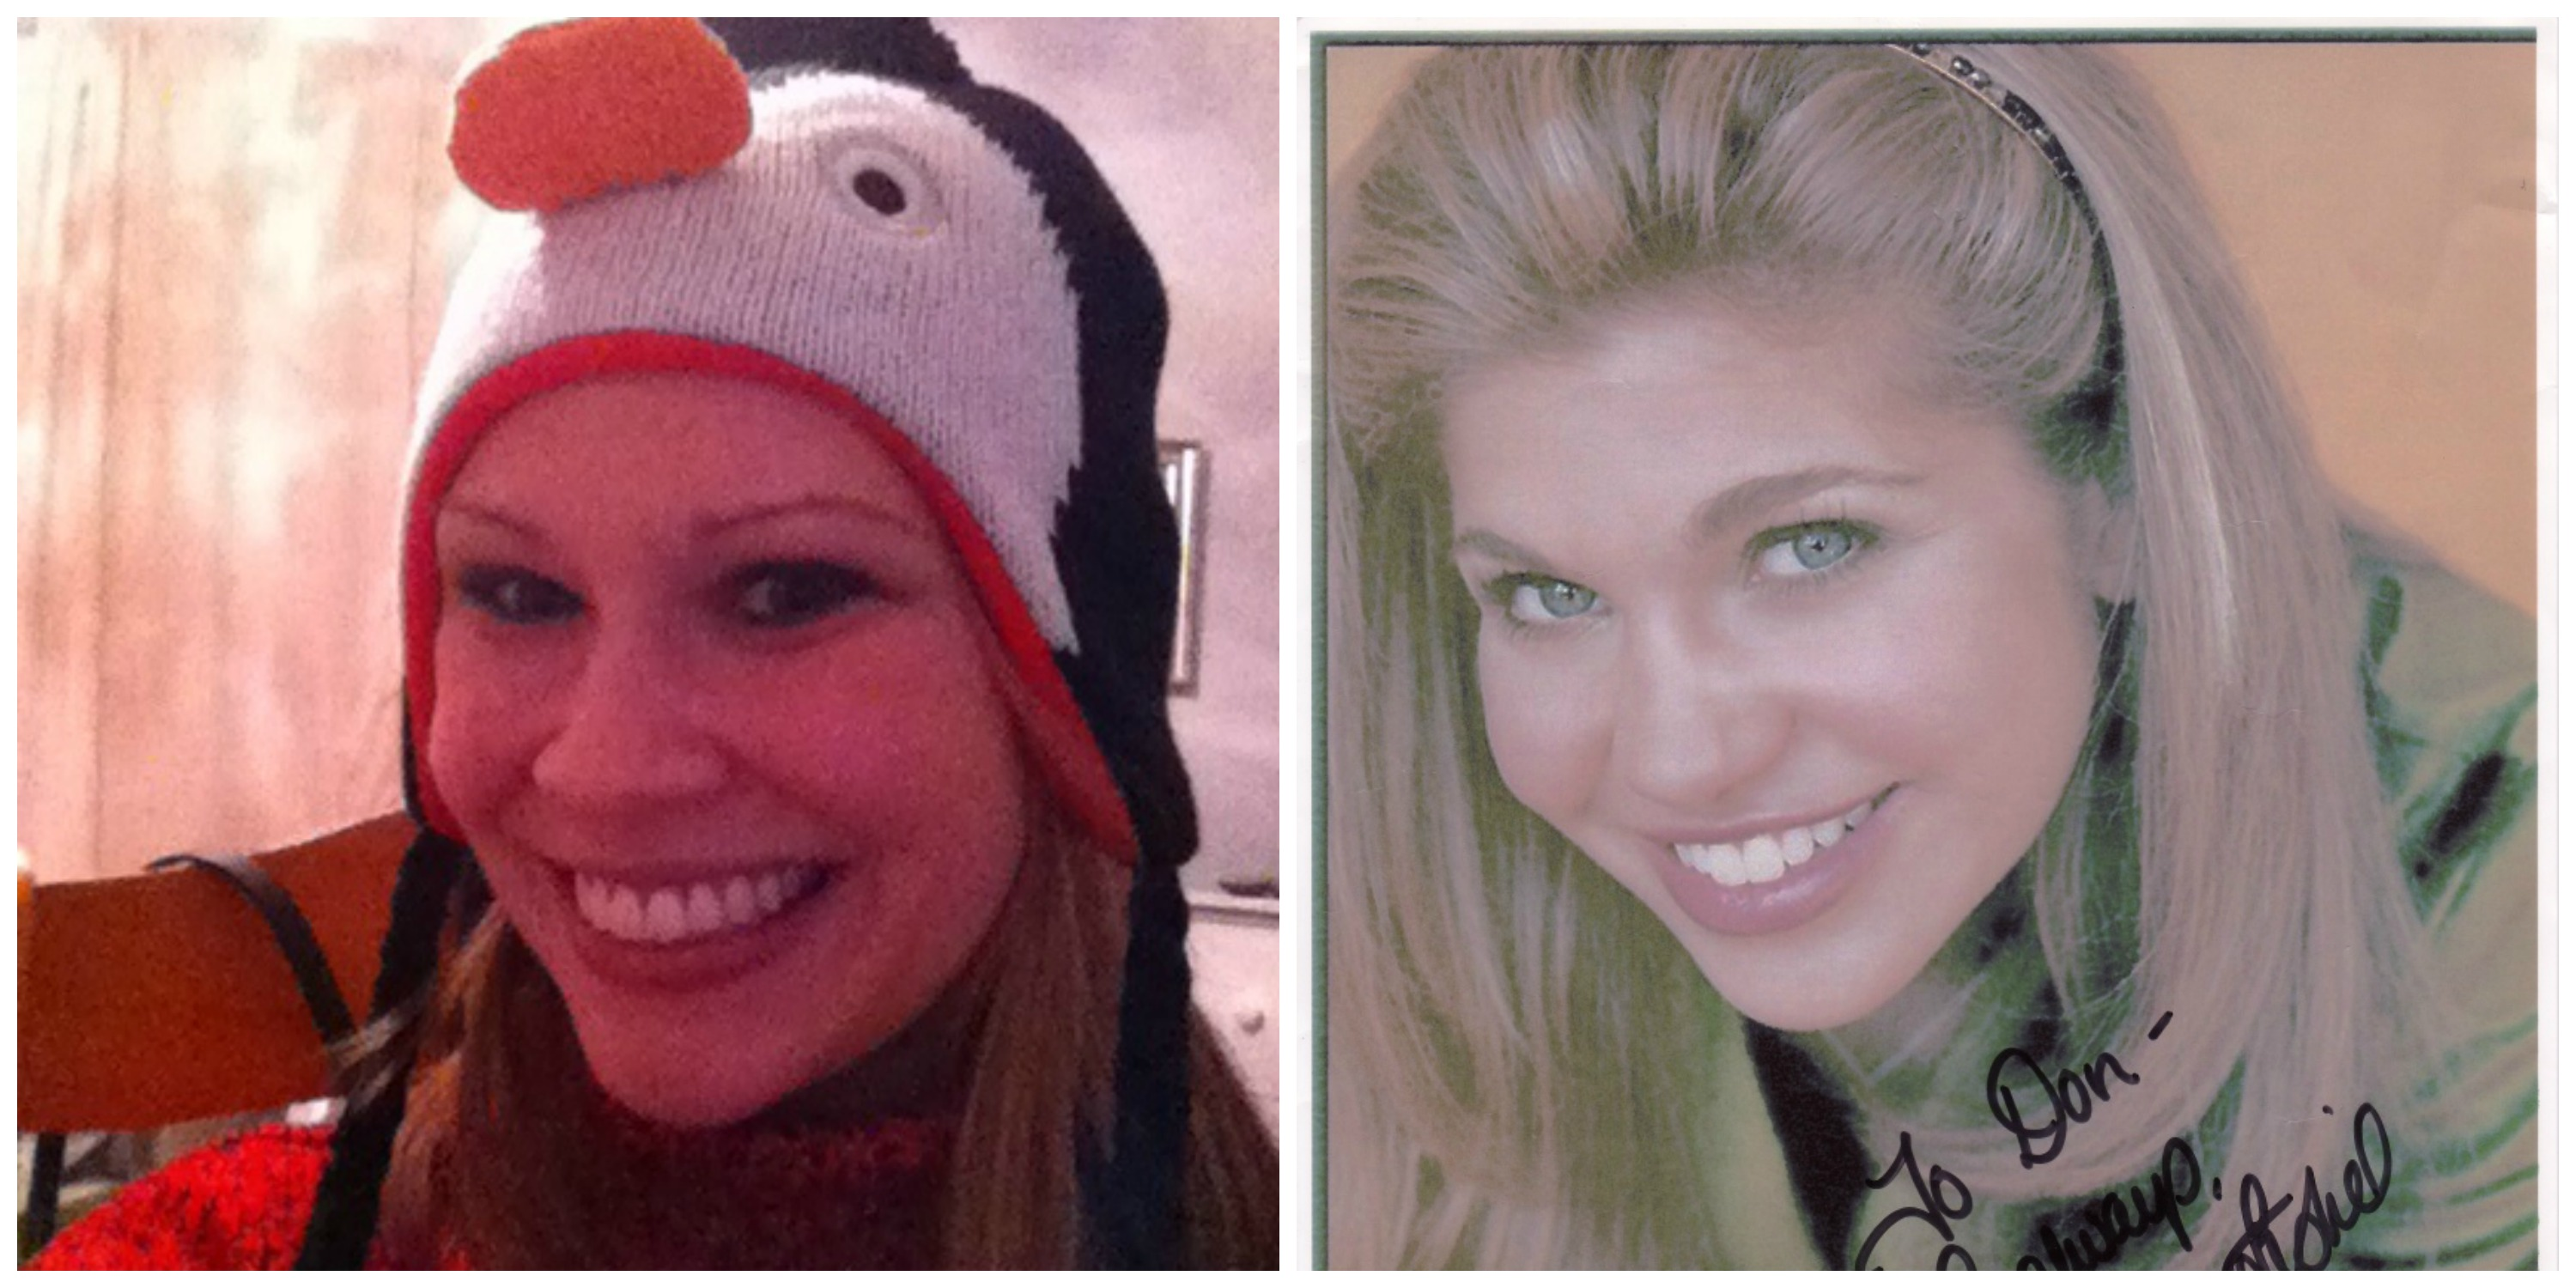 Imagine me with professional hair and makeup, or her in a penguin hat.